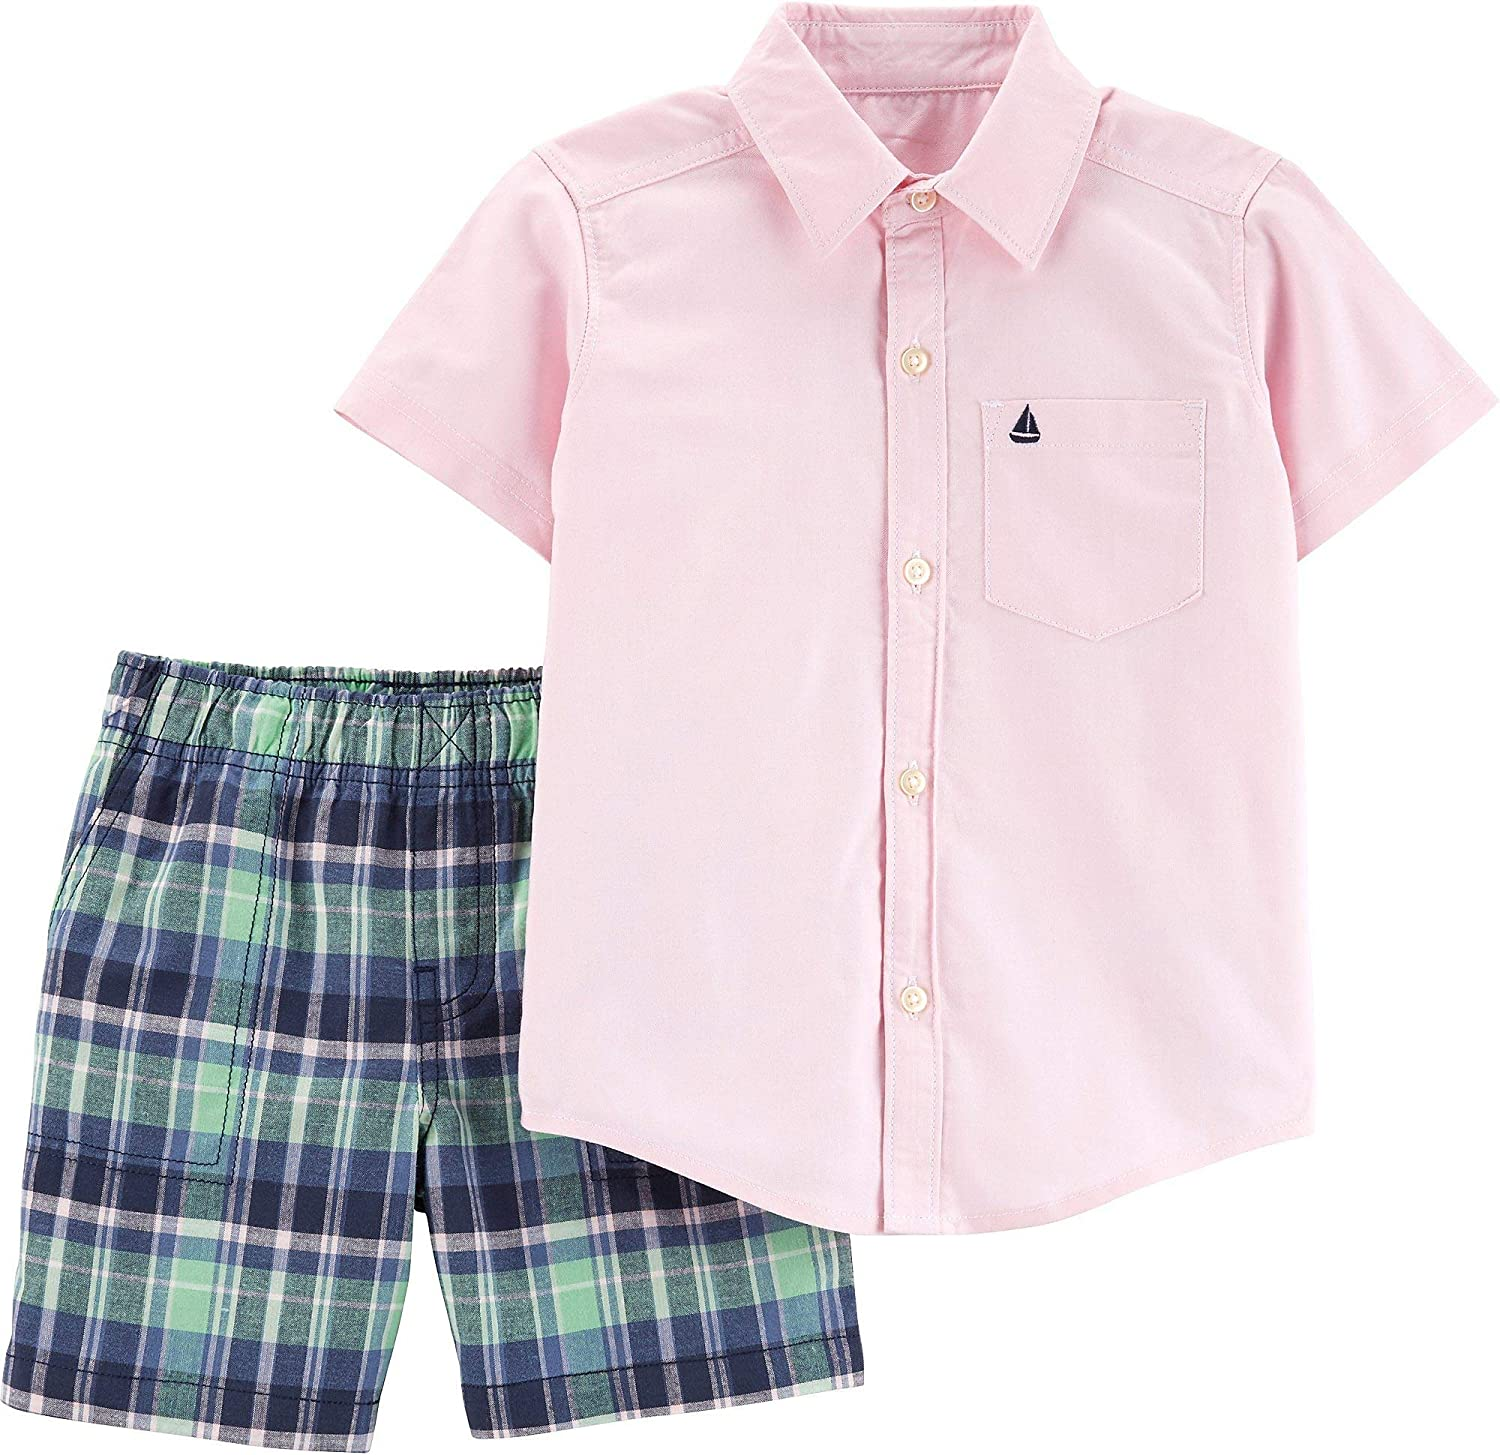 Carters Baby Boys Oxford Plaid Button Down Shorts Set 3 Month Pink/Green/Blue